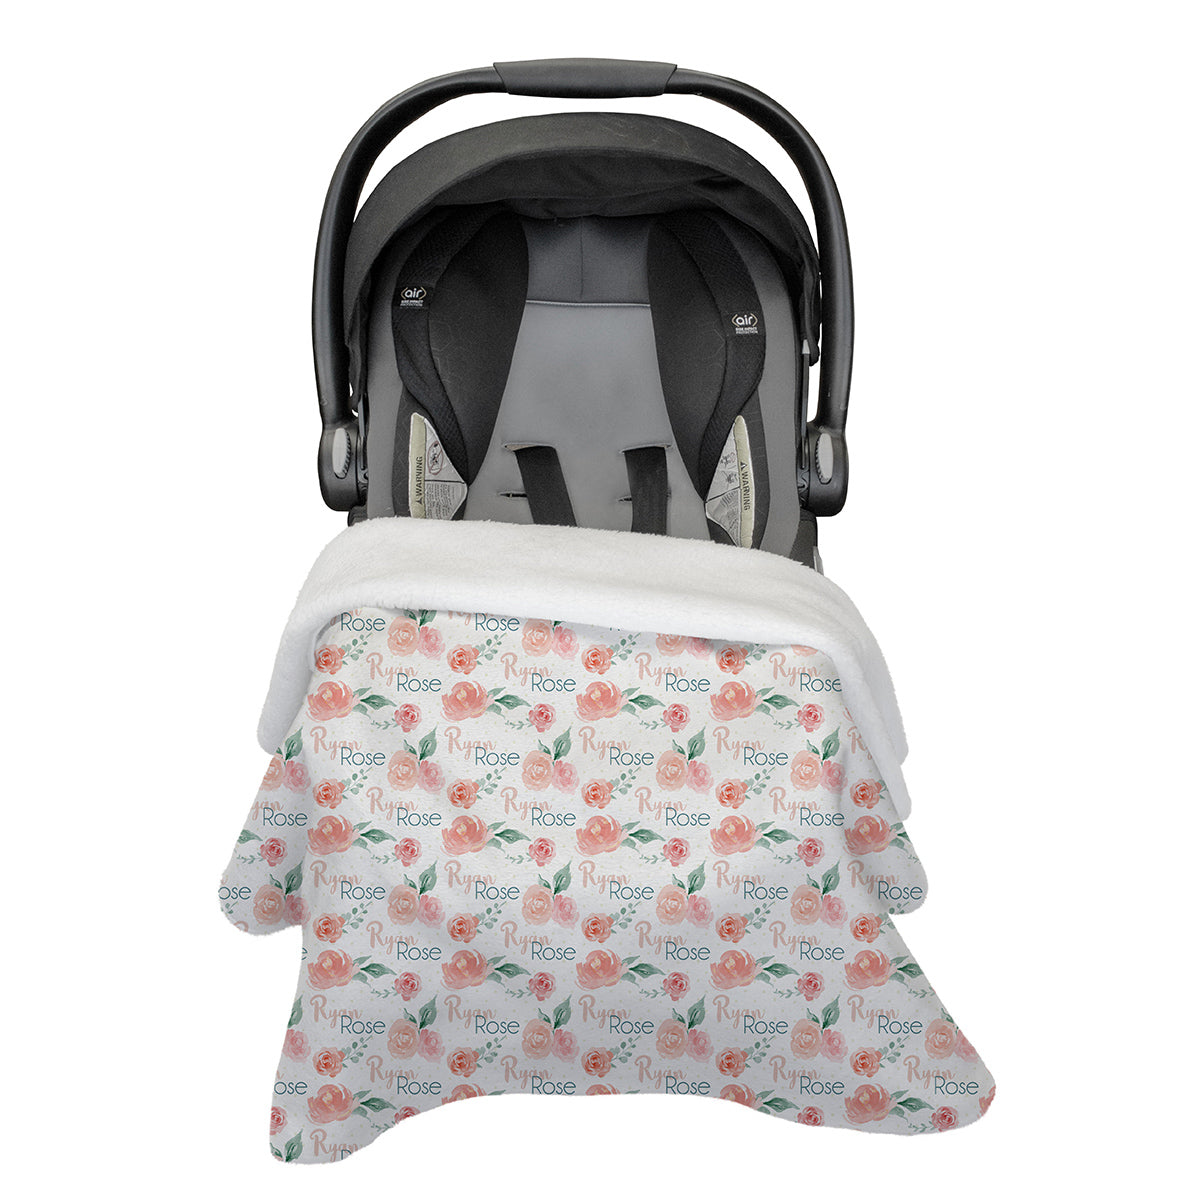 Ryan Rose | Rose Garden | Car Seat Blanket